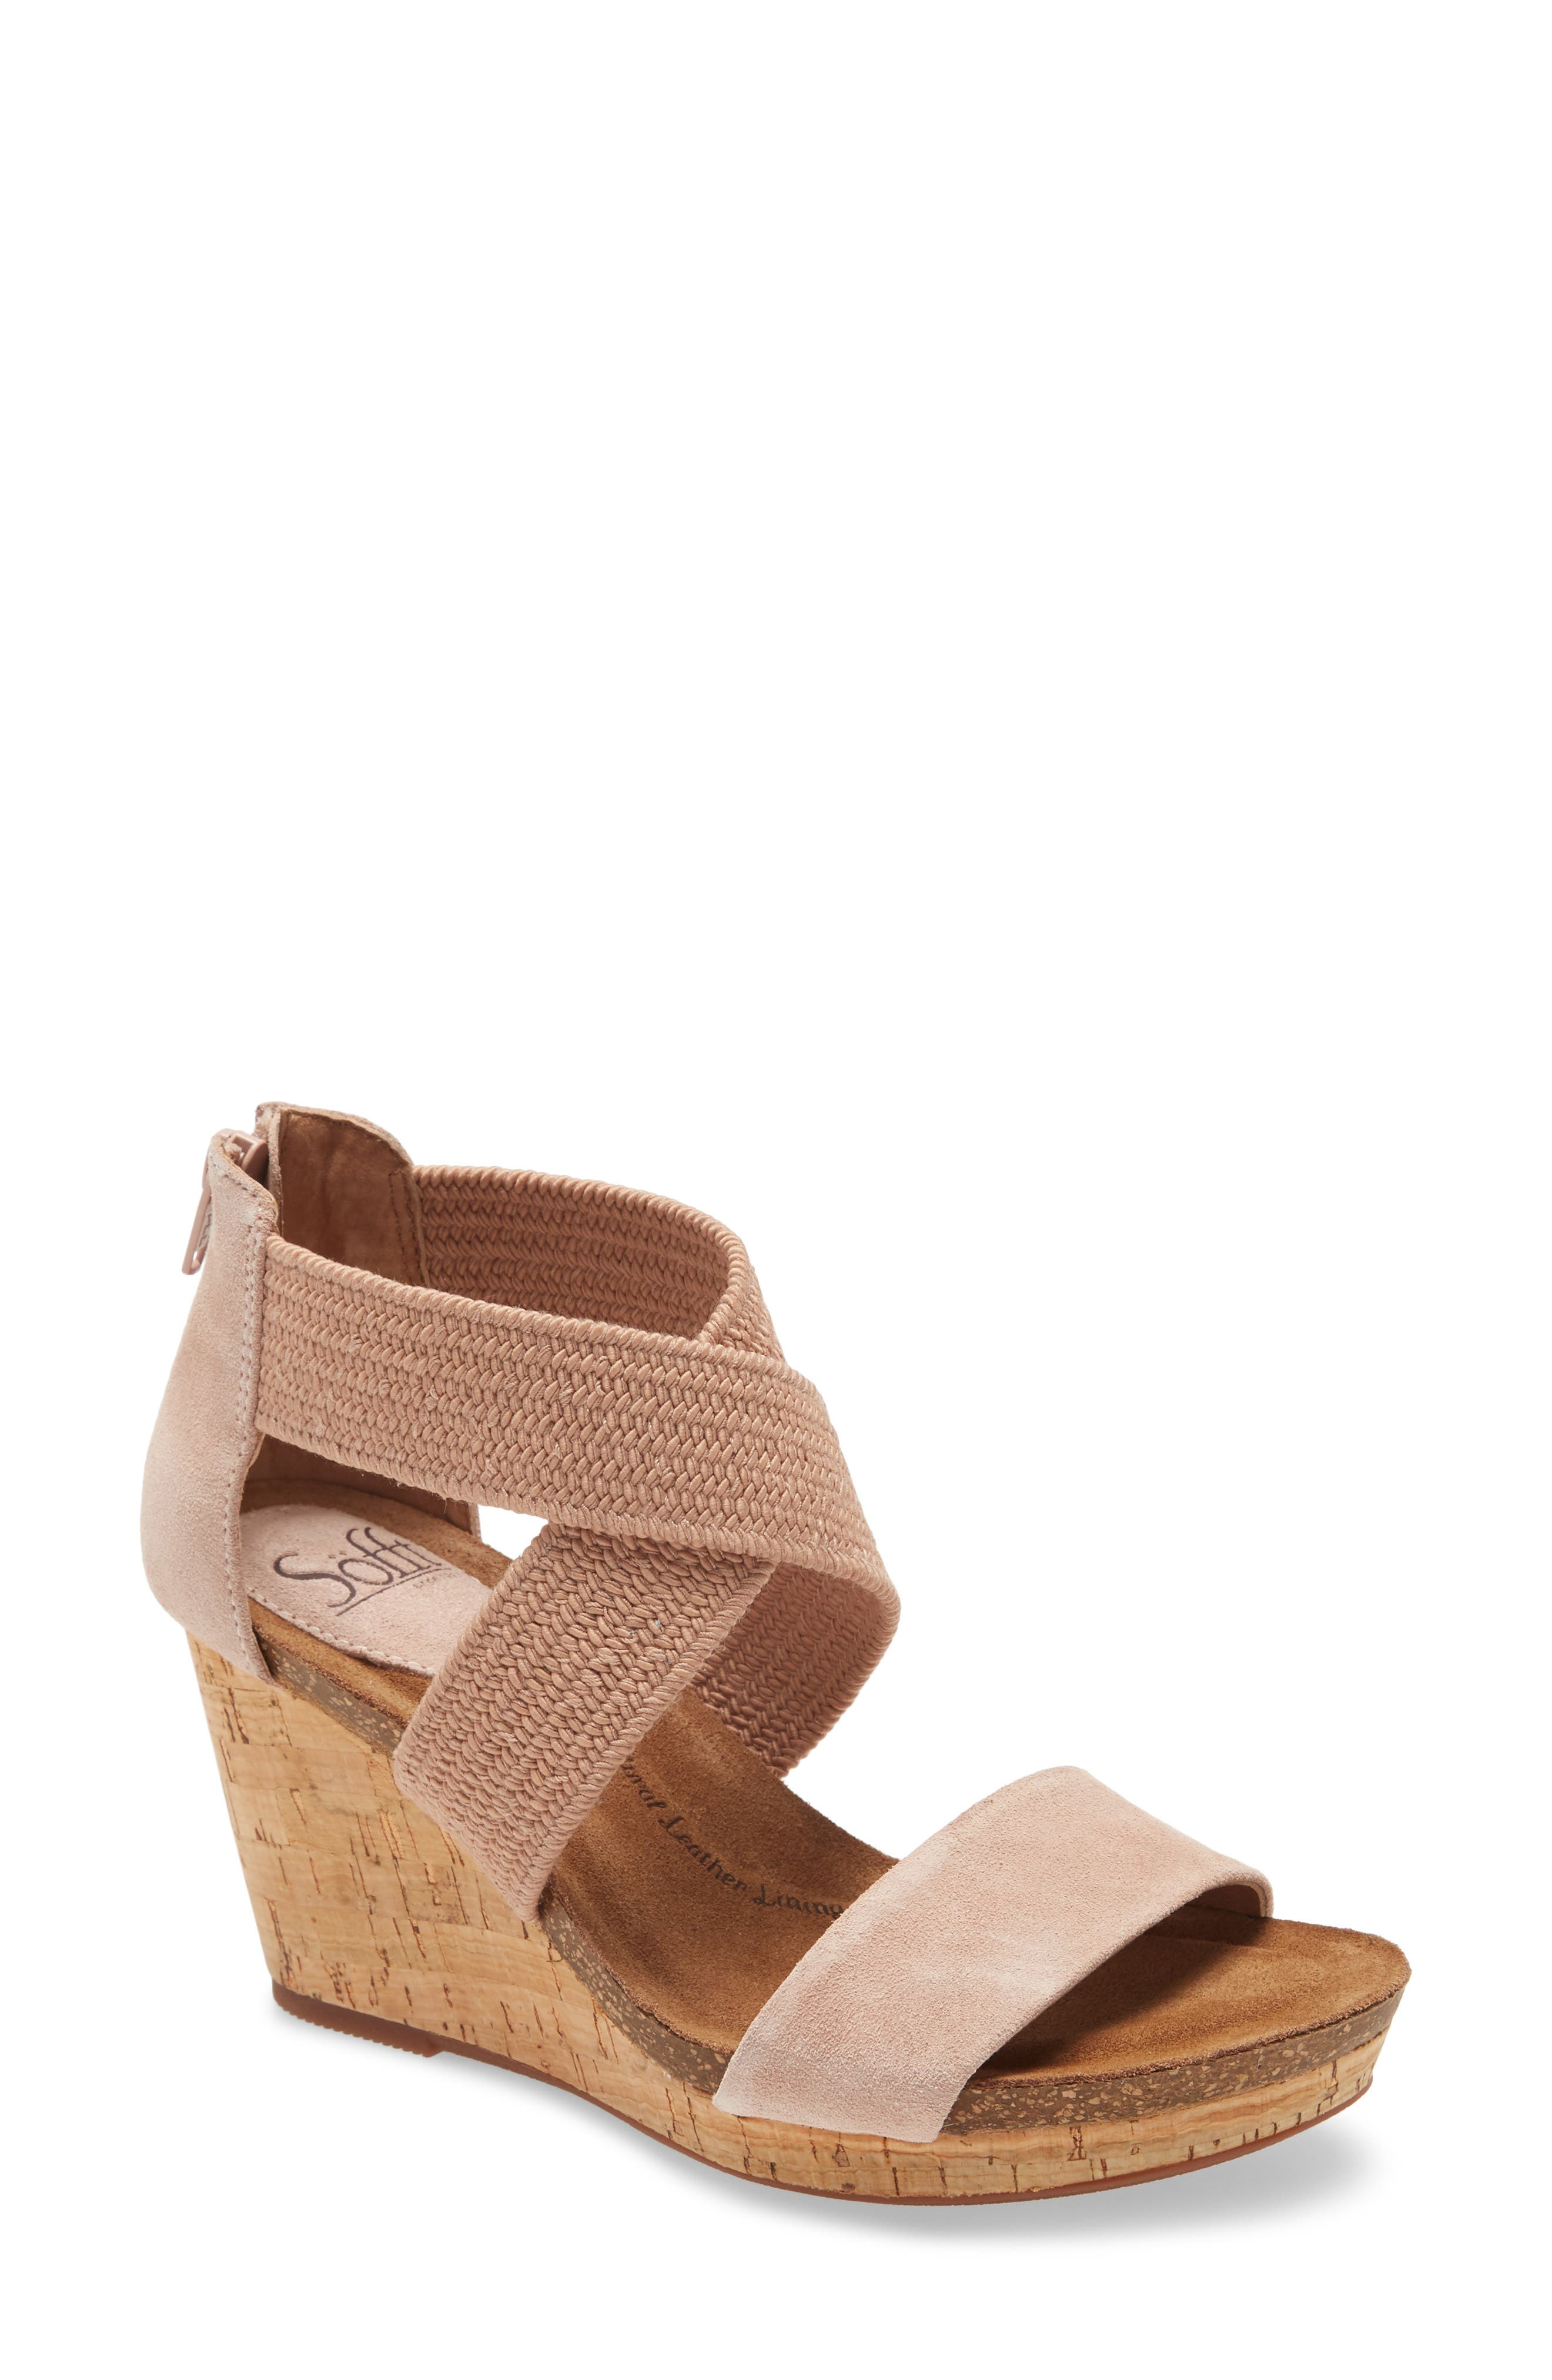 Crossed elastic straps at the inset and a back zip closure stylishly secure this wedge sandal that features a plush, sink-in footbed for all-day comfort. Style Name: Sofft Chalette Cork Wedge Sandal (Women). Style Number: 5993837 1. Available in stores.